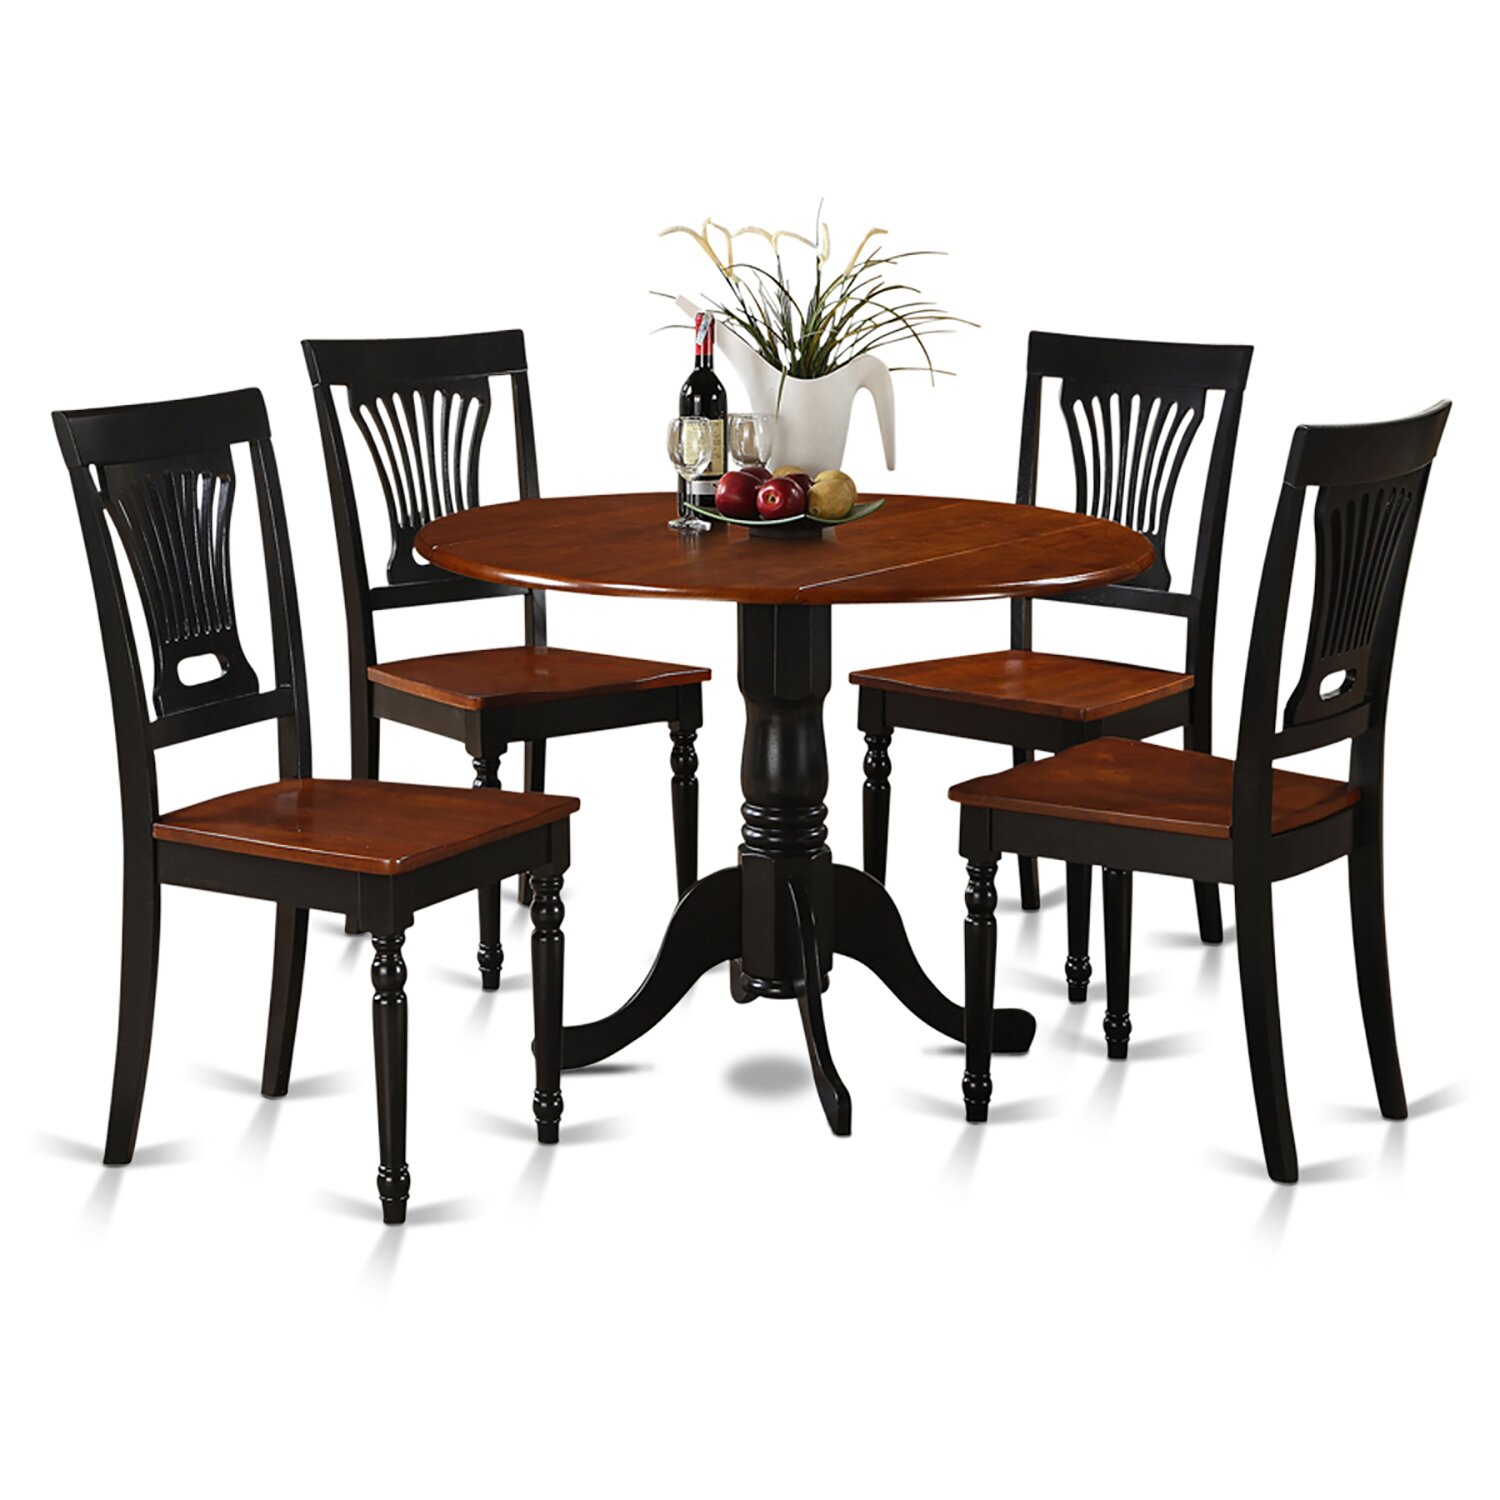 Wooden importers dublin 5 piece dining set reviews wayfair for Small table and 4 chair set